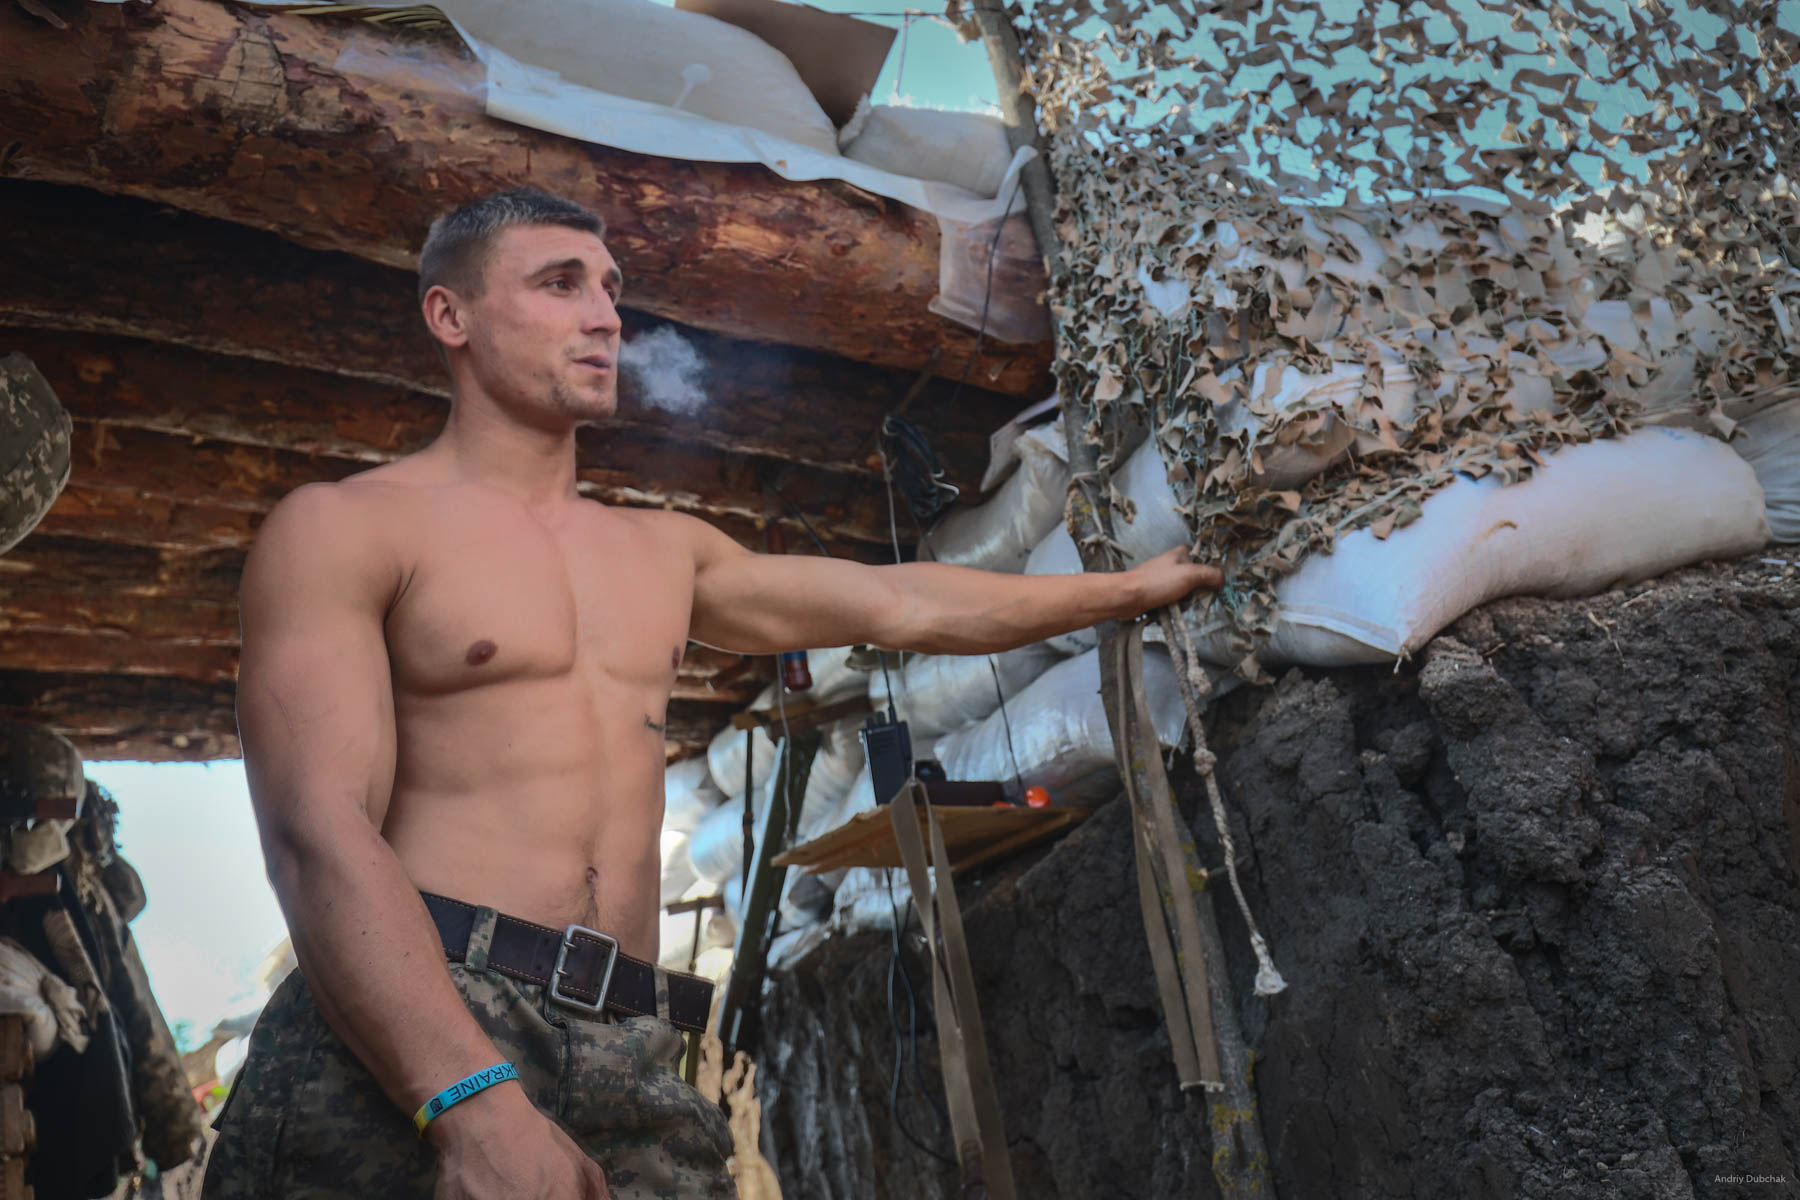 """A sailor of Marines with a call name """"Rambo,"""" during a snack at the front, near Vodyane. The heat in June was terrible. Vodyane, March 2018"""